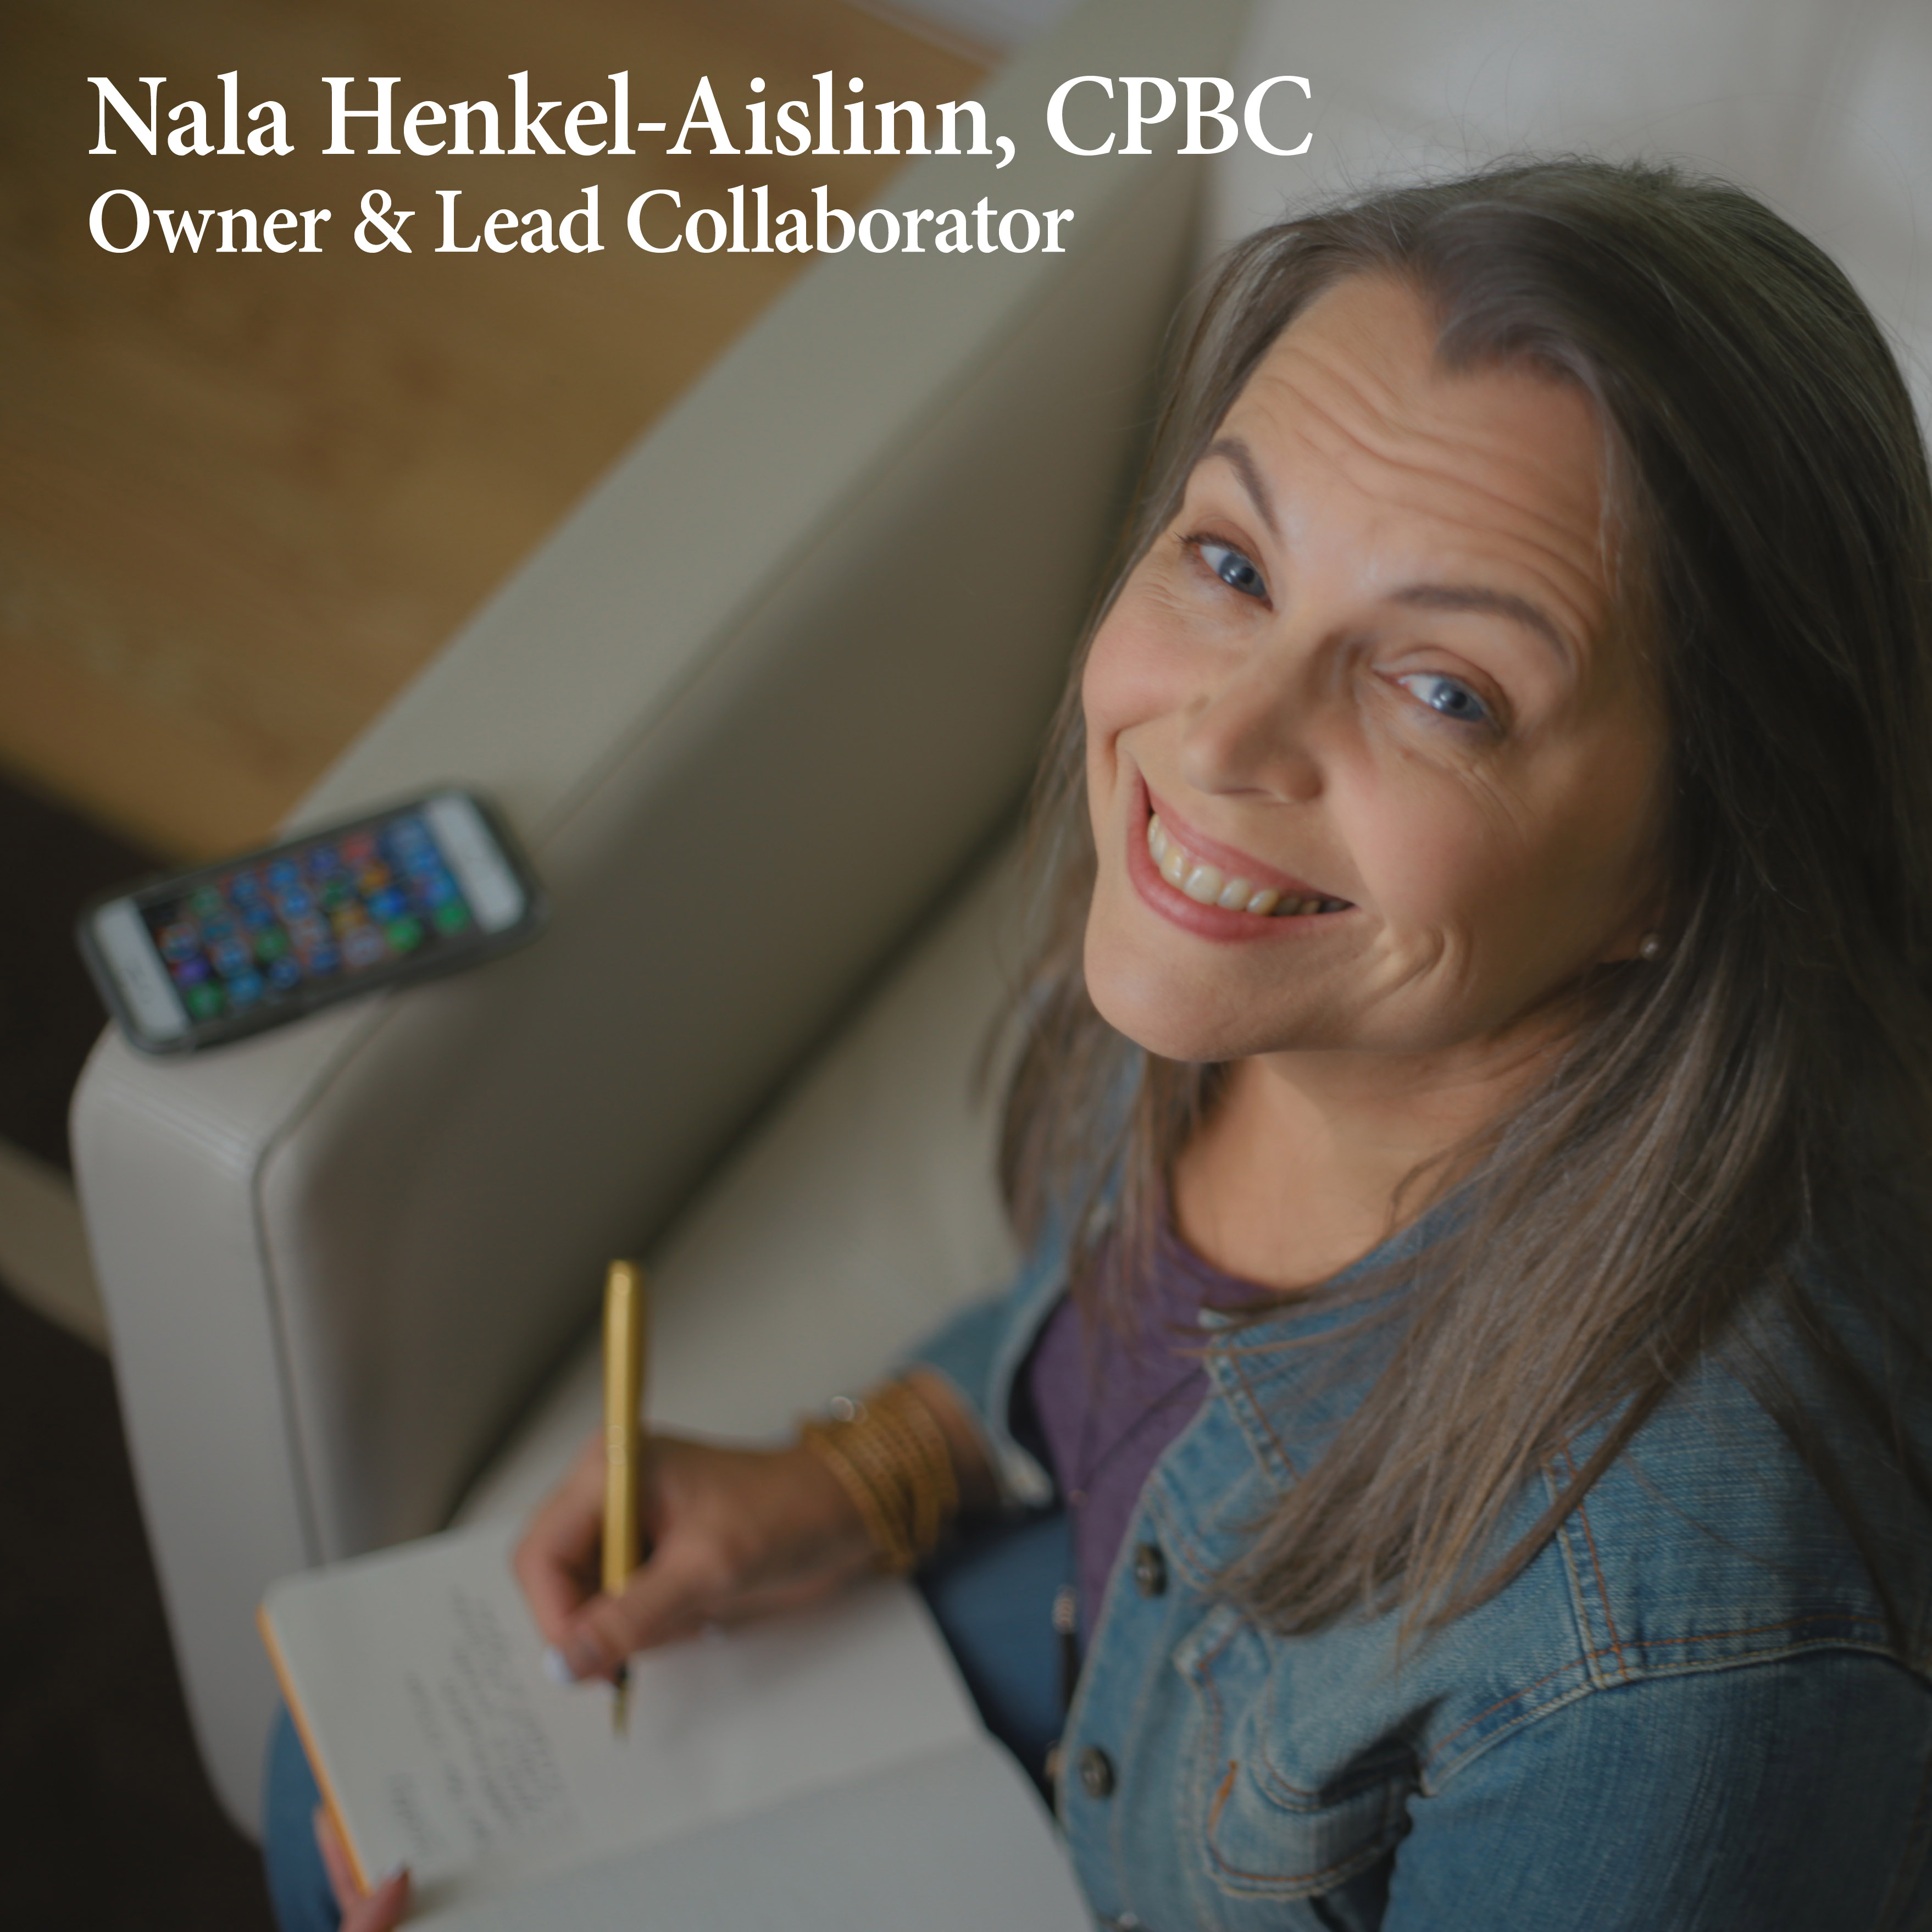 Nala-Henkel-Aislinn-Lodestar-Collaboration-small-business-marketing-Bellingham-WA